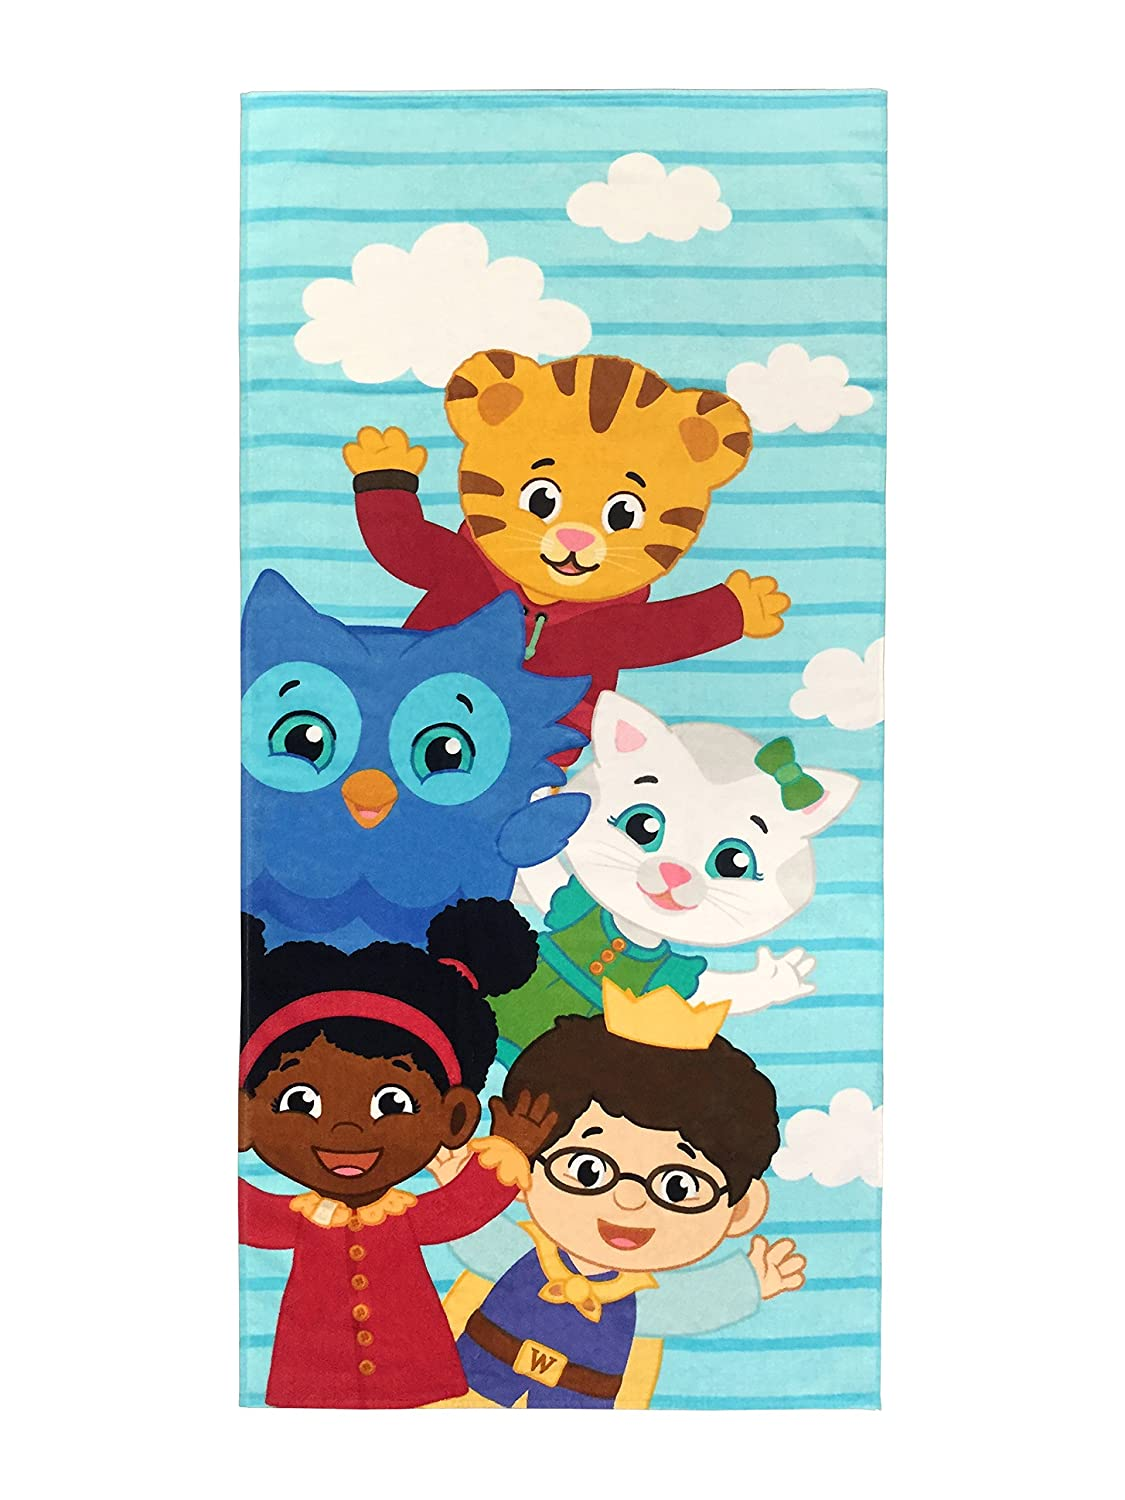 Jay Franco Daniel Tiger Neighbors Kids Bath/Pool/Beach Towel - Super Soft & Absorbent Fade Resistant Cotton Towel, Measures 28 inch x 58 inch (Official Daniel Tiger Product)